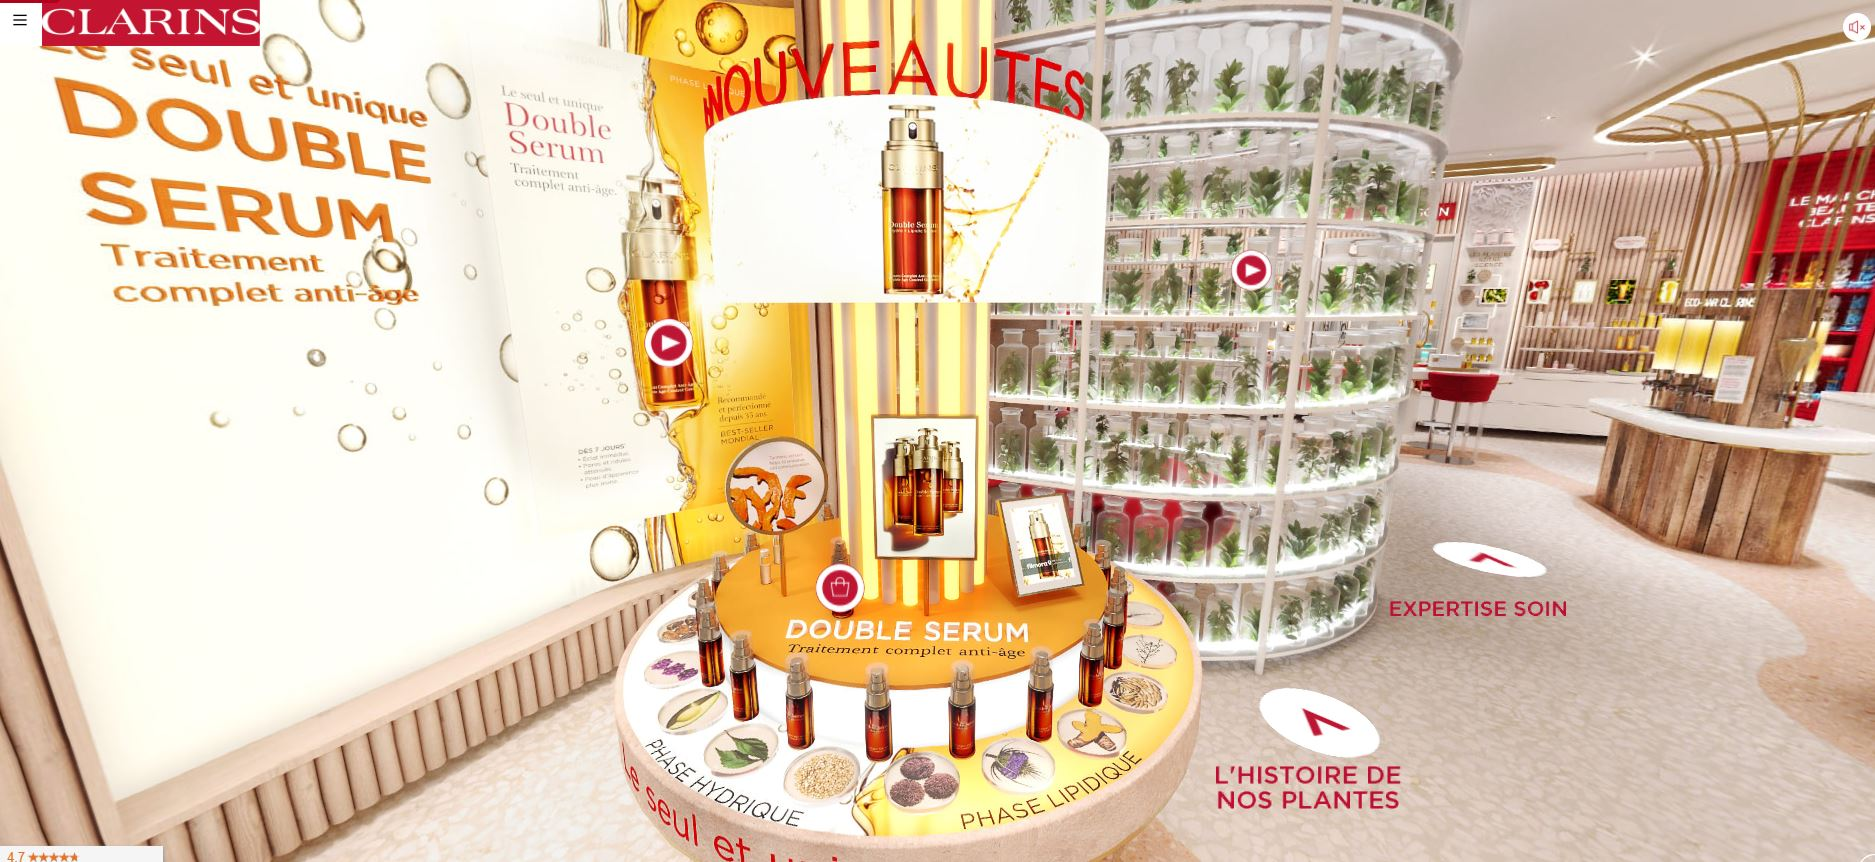 revue beauté virtual store concept retail clarins